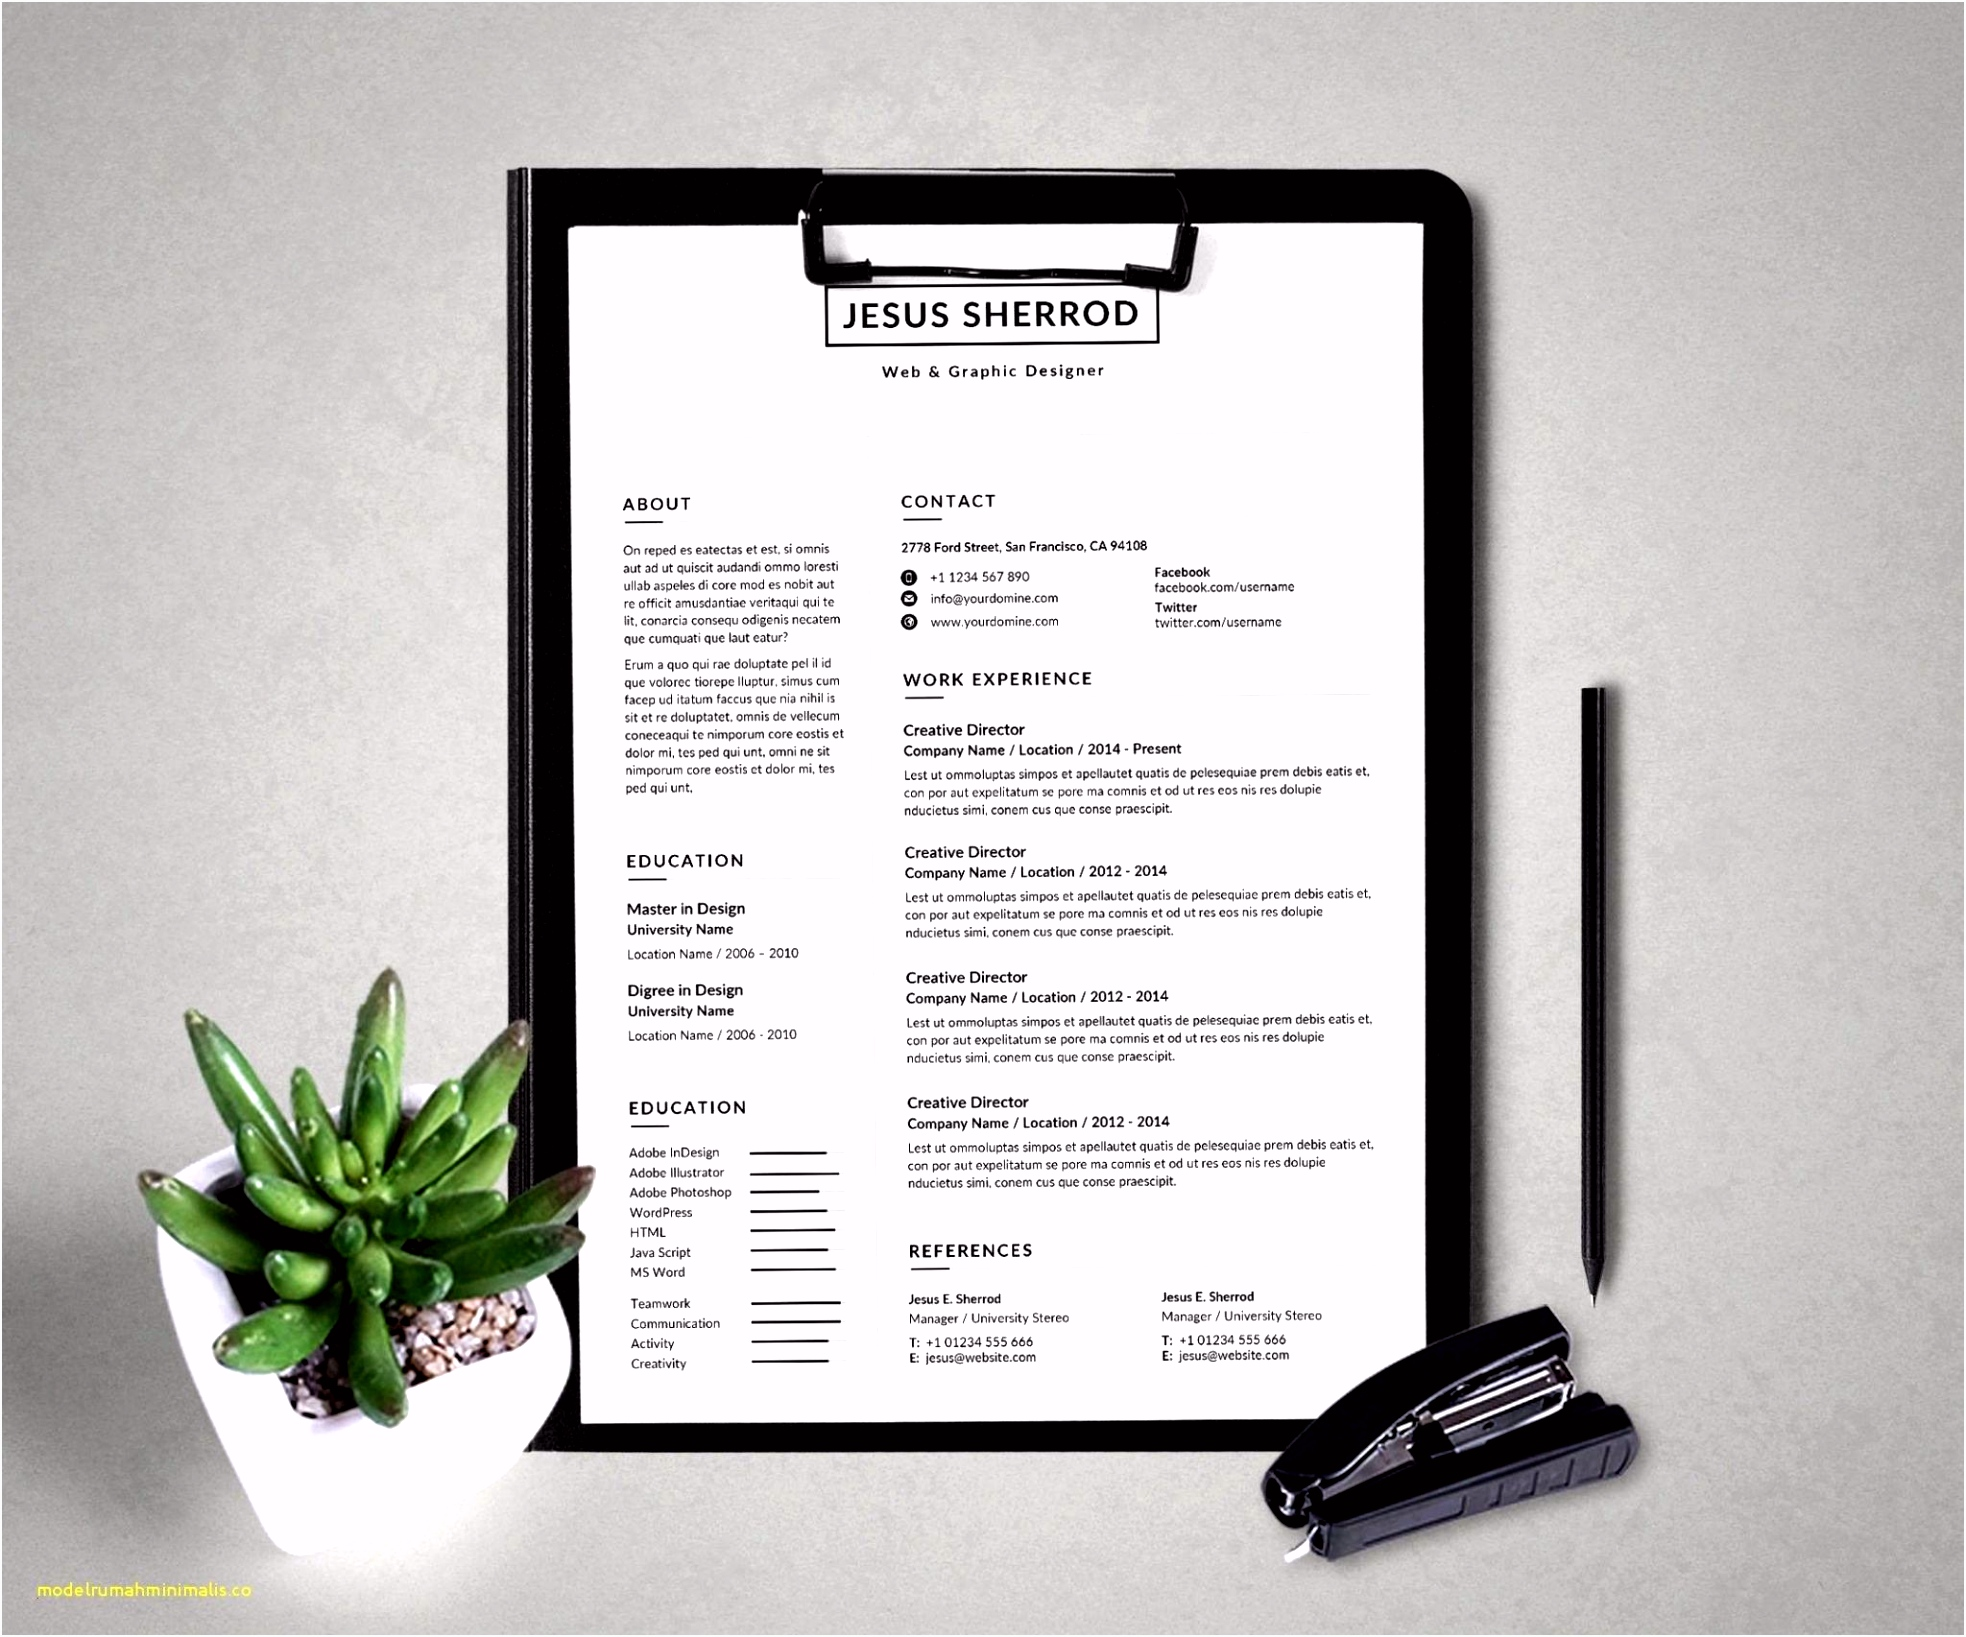 Book List Excel Template Glendale munity Document Template